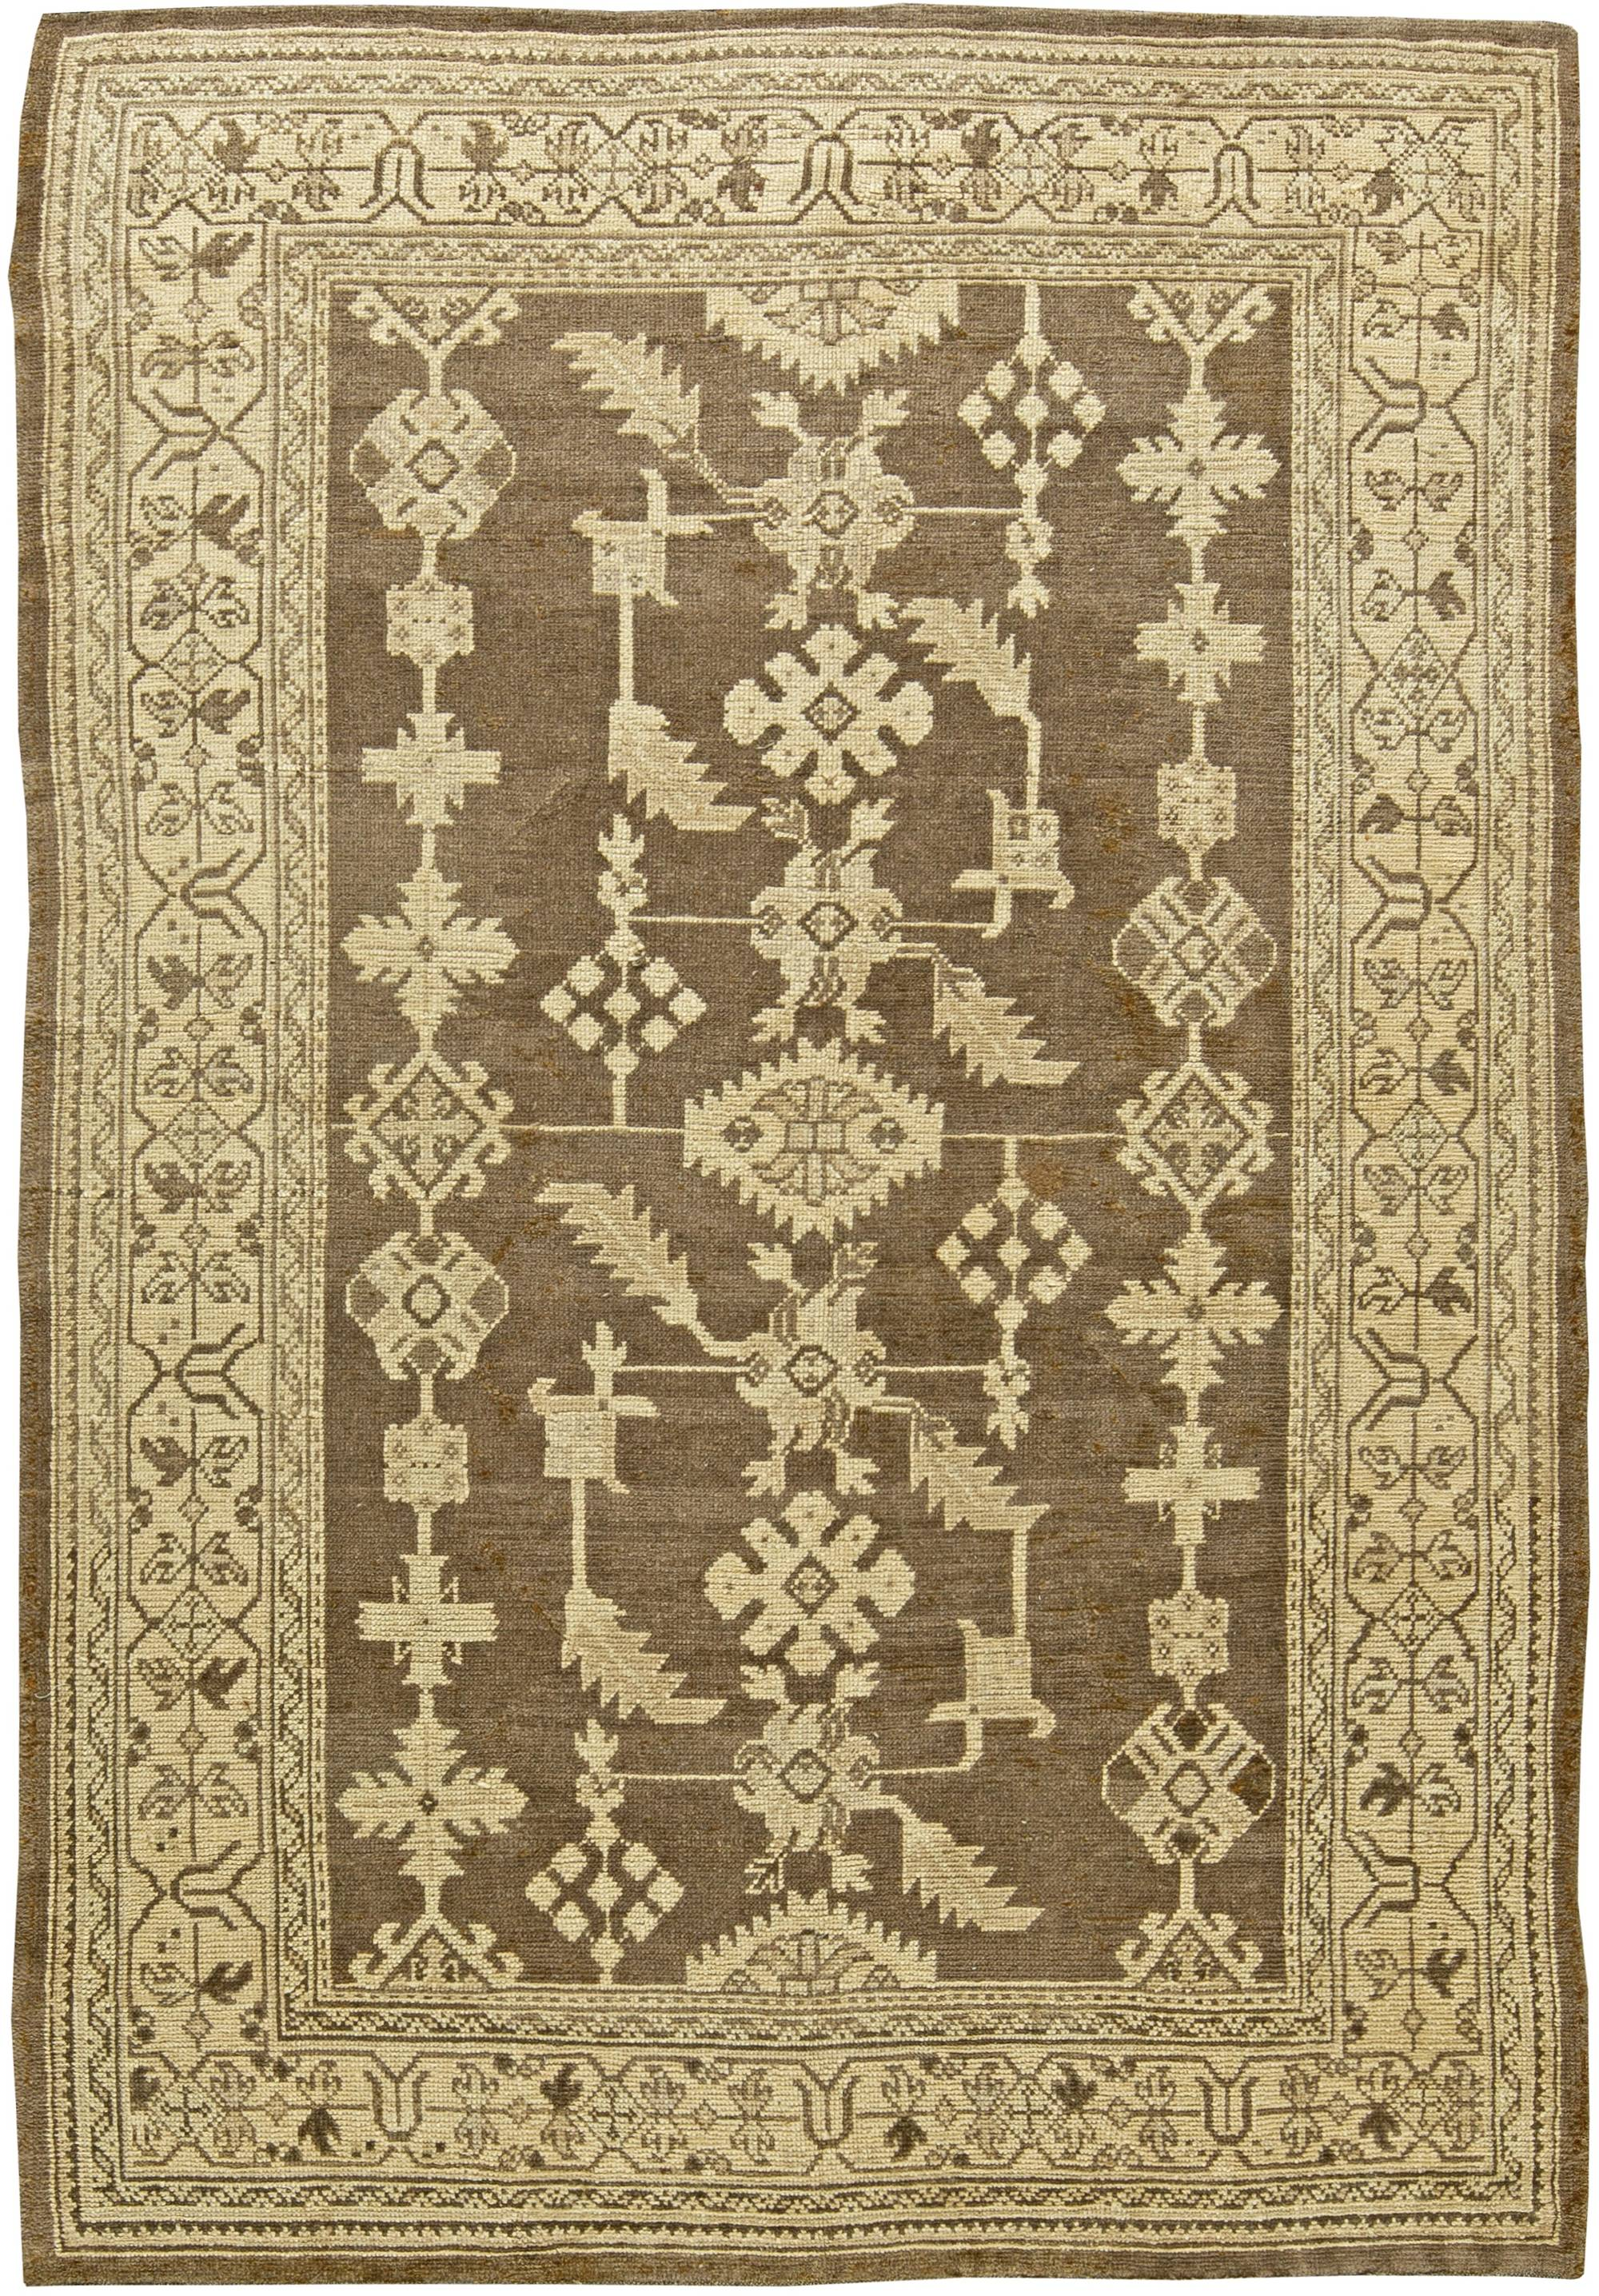 vintage turkish oushak rug bb6053 by doris leslie blau 87969